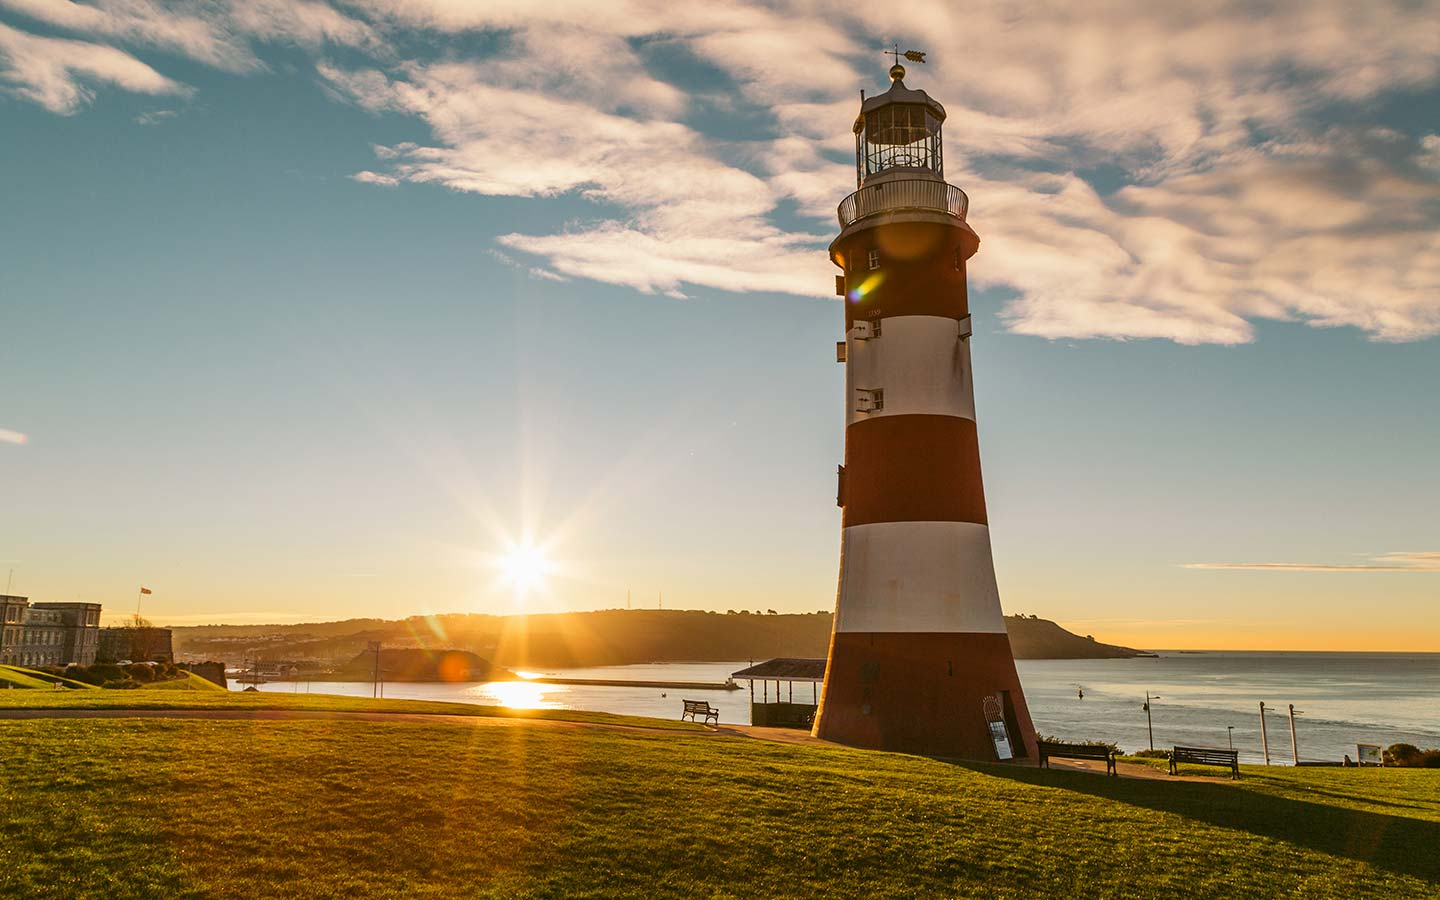 Sunset at Smeatons Tower lighthouse in Plymouth